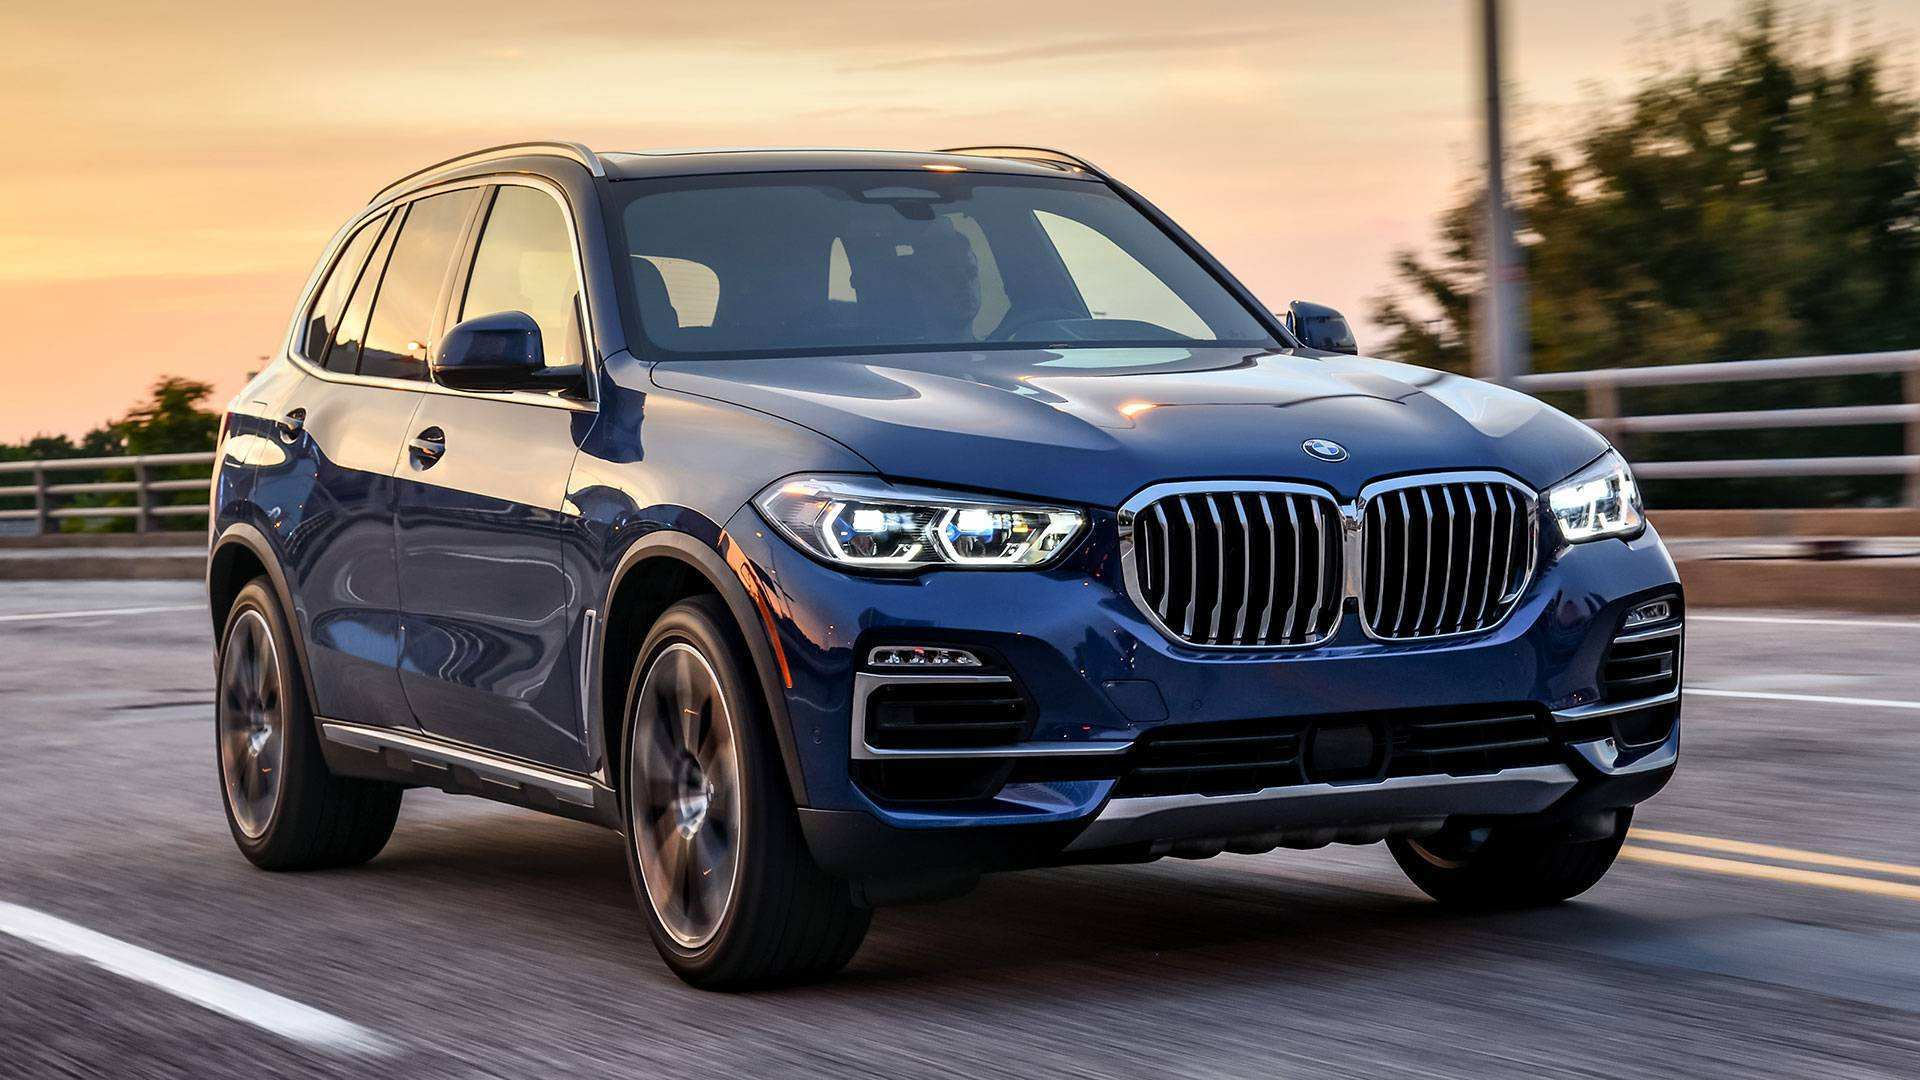 44 Best Review The 2019 Bmw X5 Configurator Usa Redesign And Concept Rumors by The 2019 Bmw X5 Configurator Usa Redesign And Concept